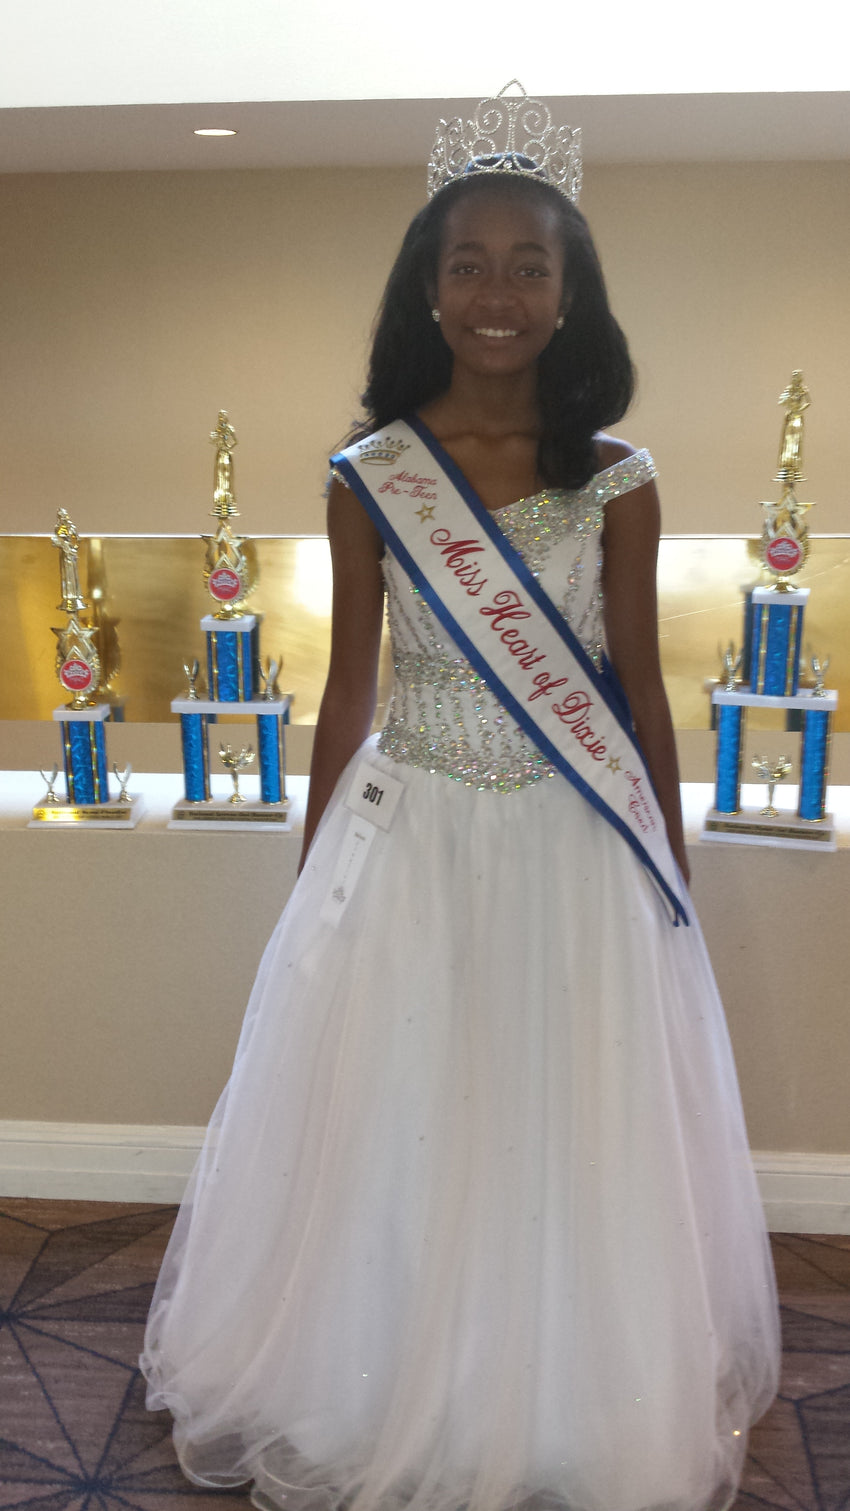 2017 Miss Heart of Dixie Pre-Teen